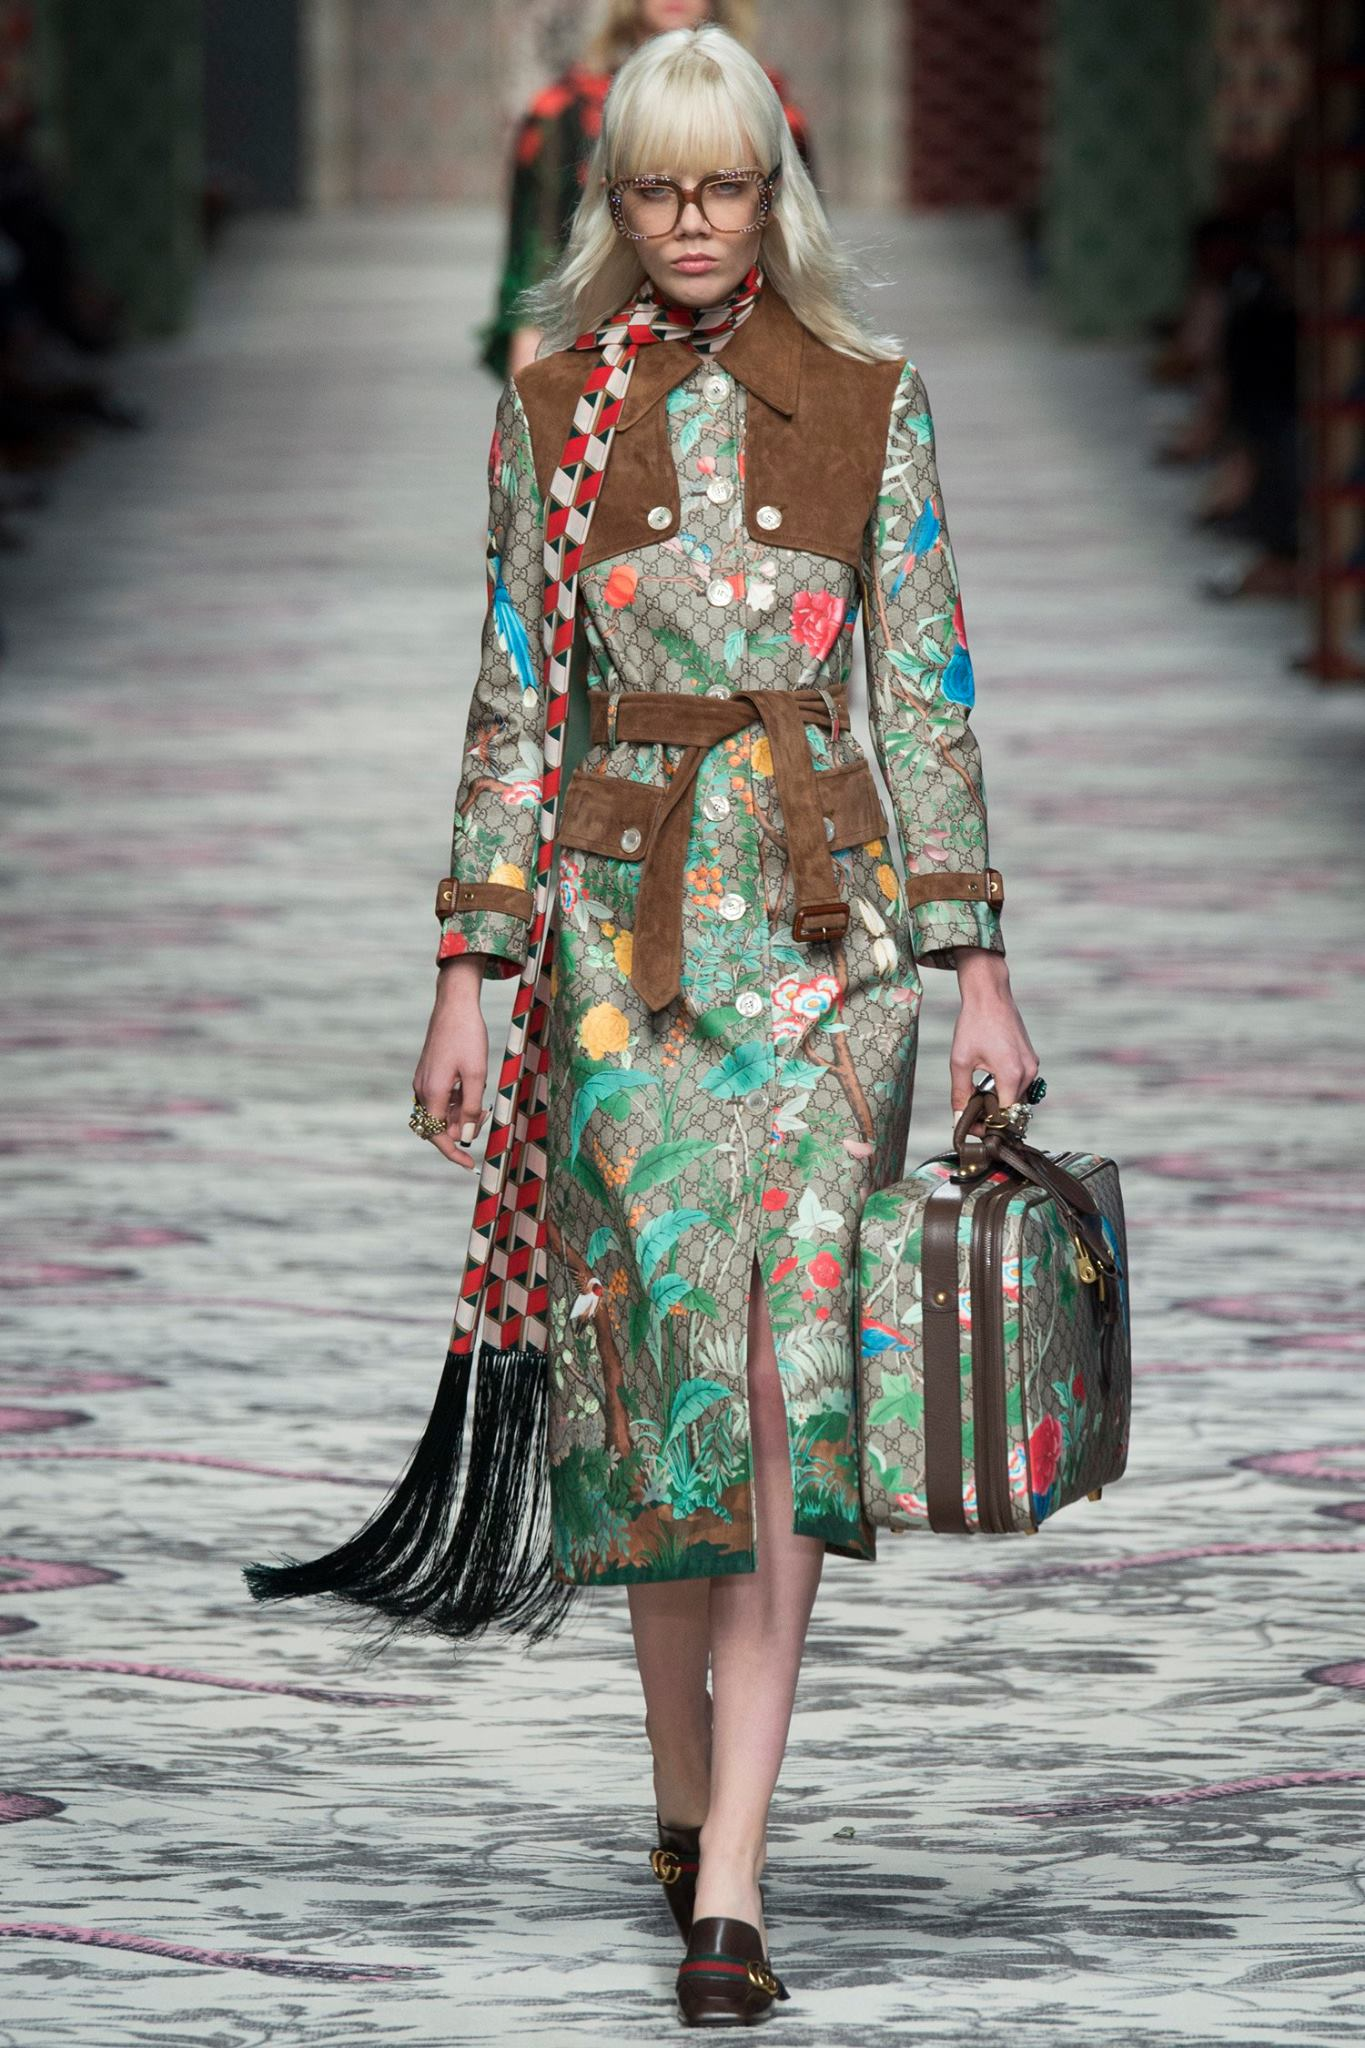 Gucci Spring Summer 2016 Sees The Glorious Blossoming Of